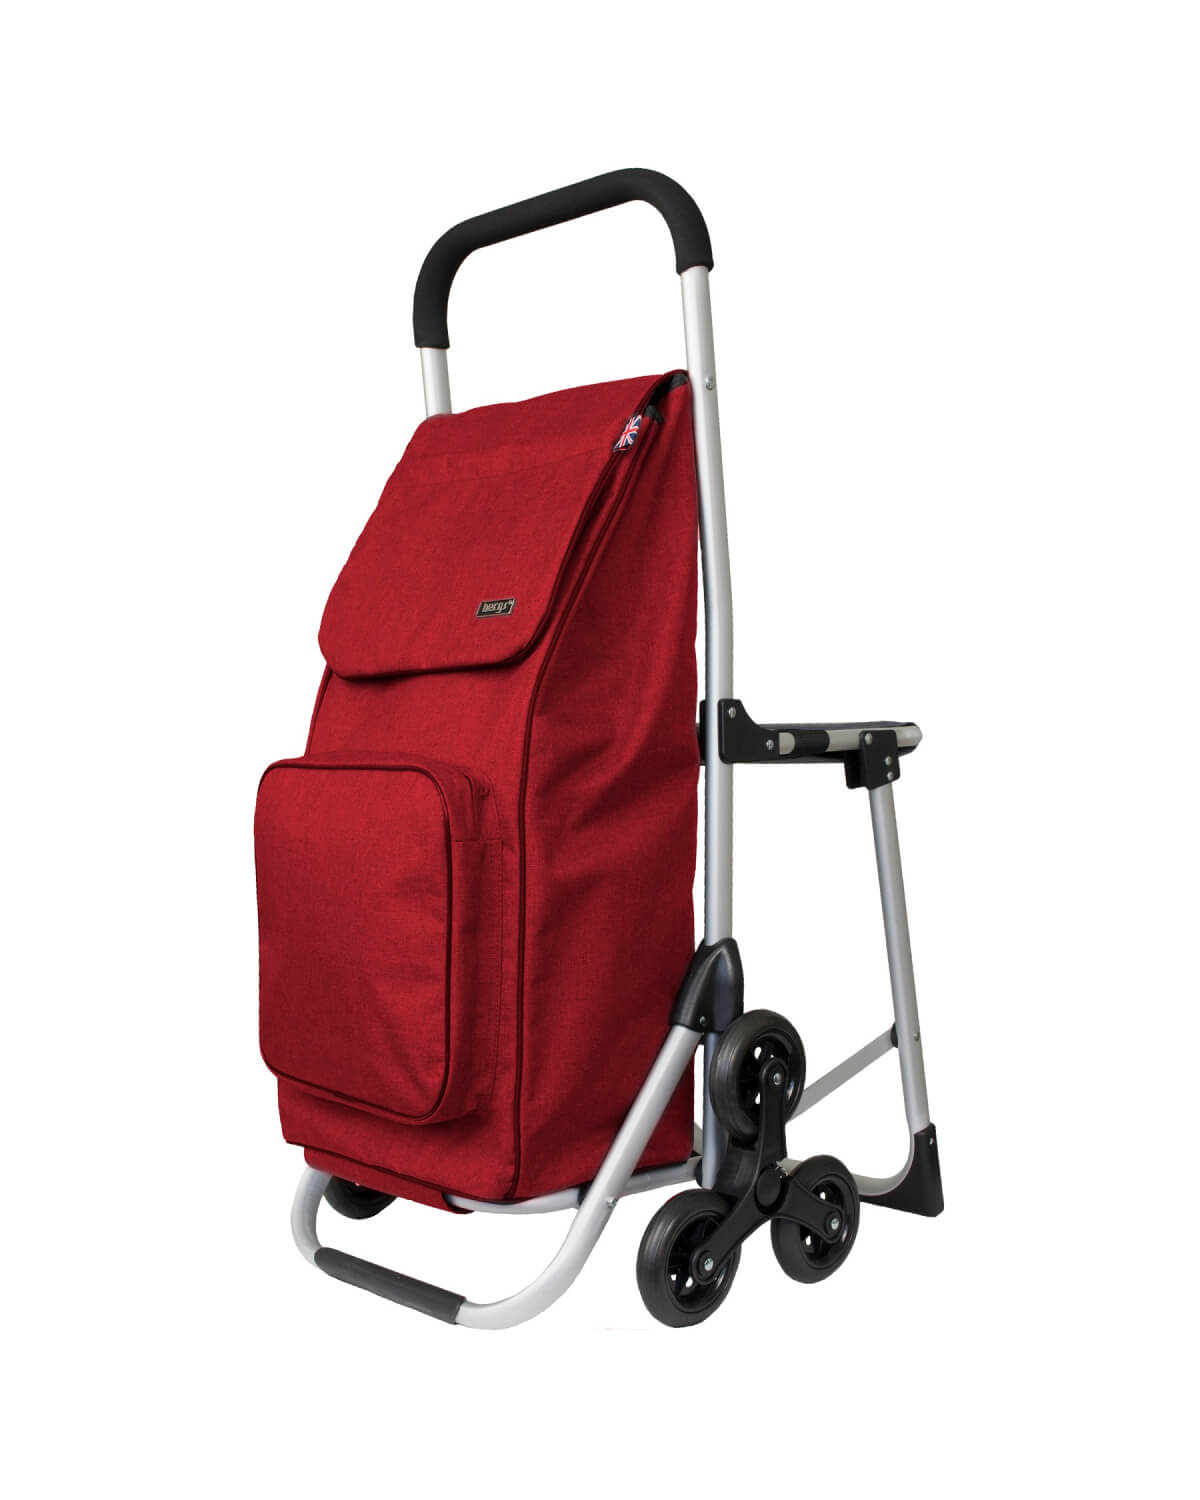 BergsCaddie Seat Trolley with 3 Wheels for Climbing Stairs Red